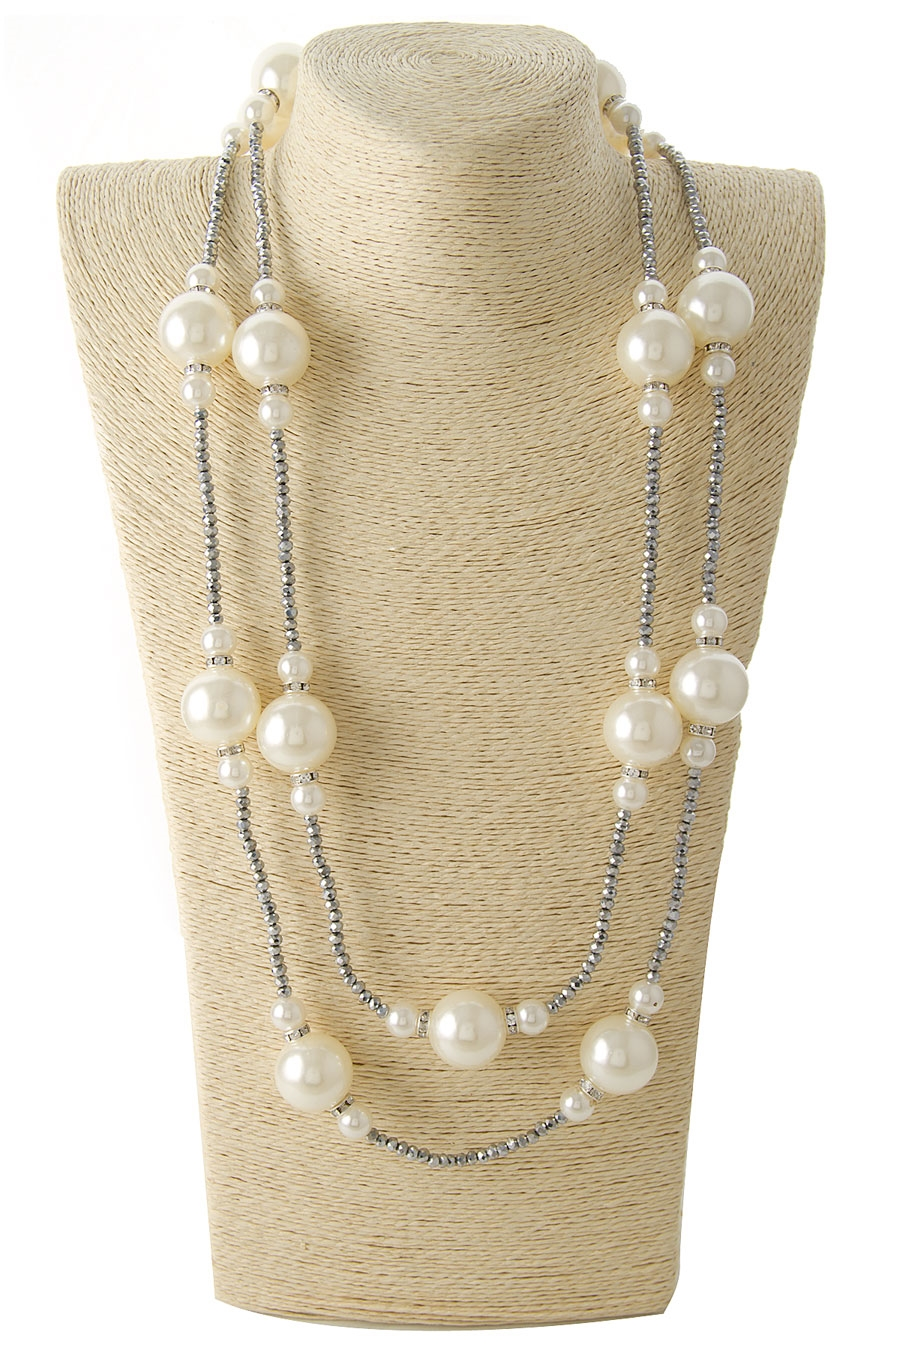 PEARL DESIGN LONG NECKLACE - orangeshine.com